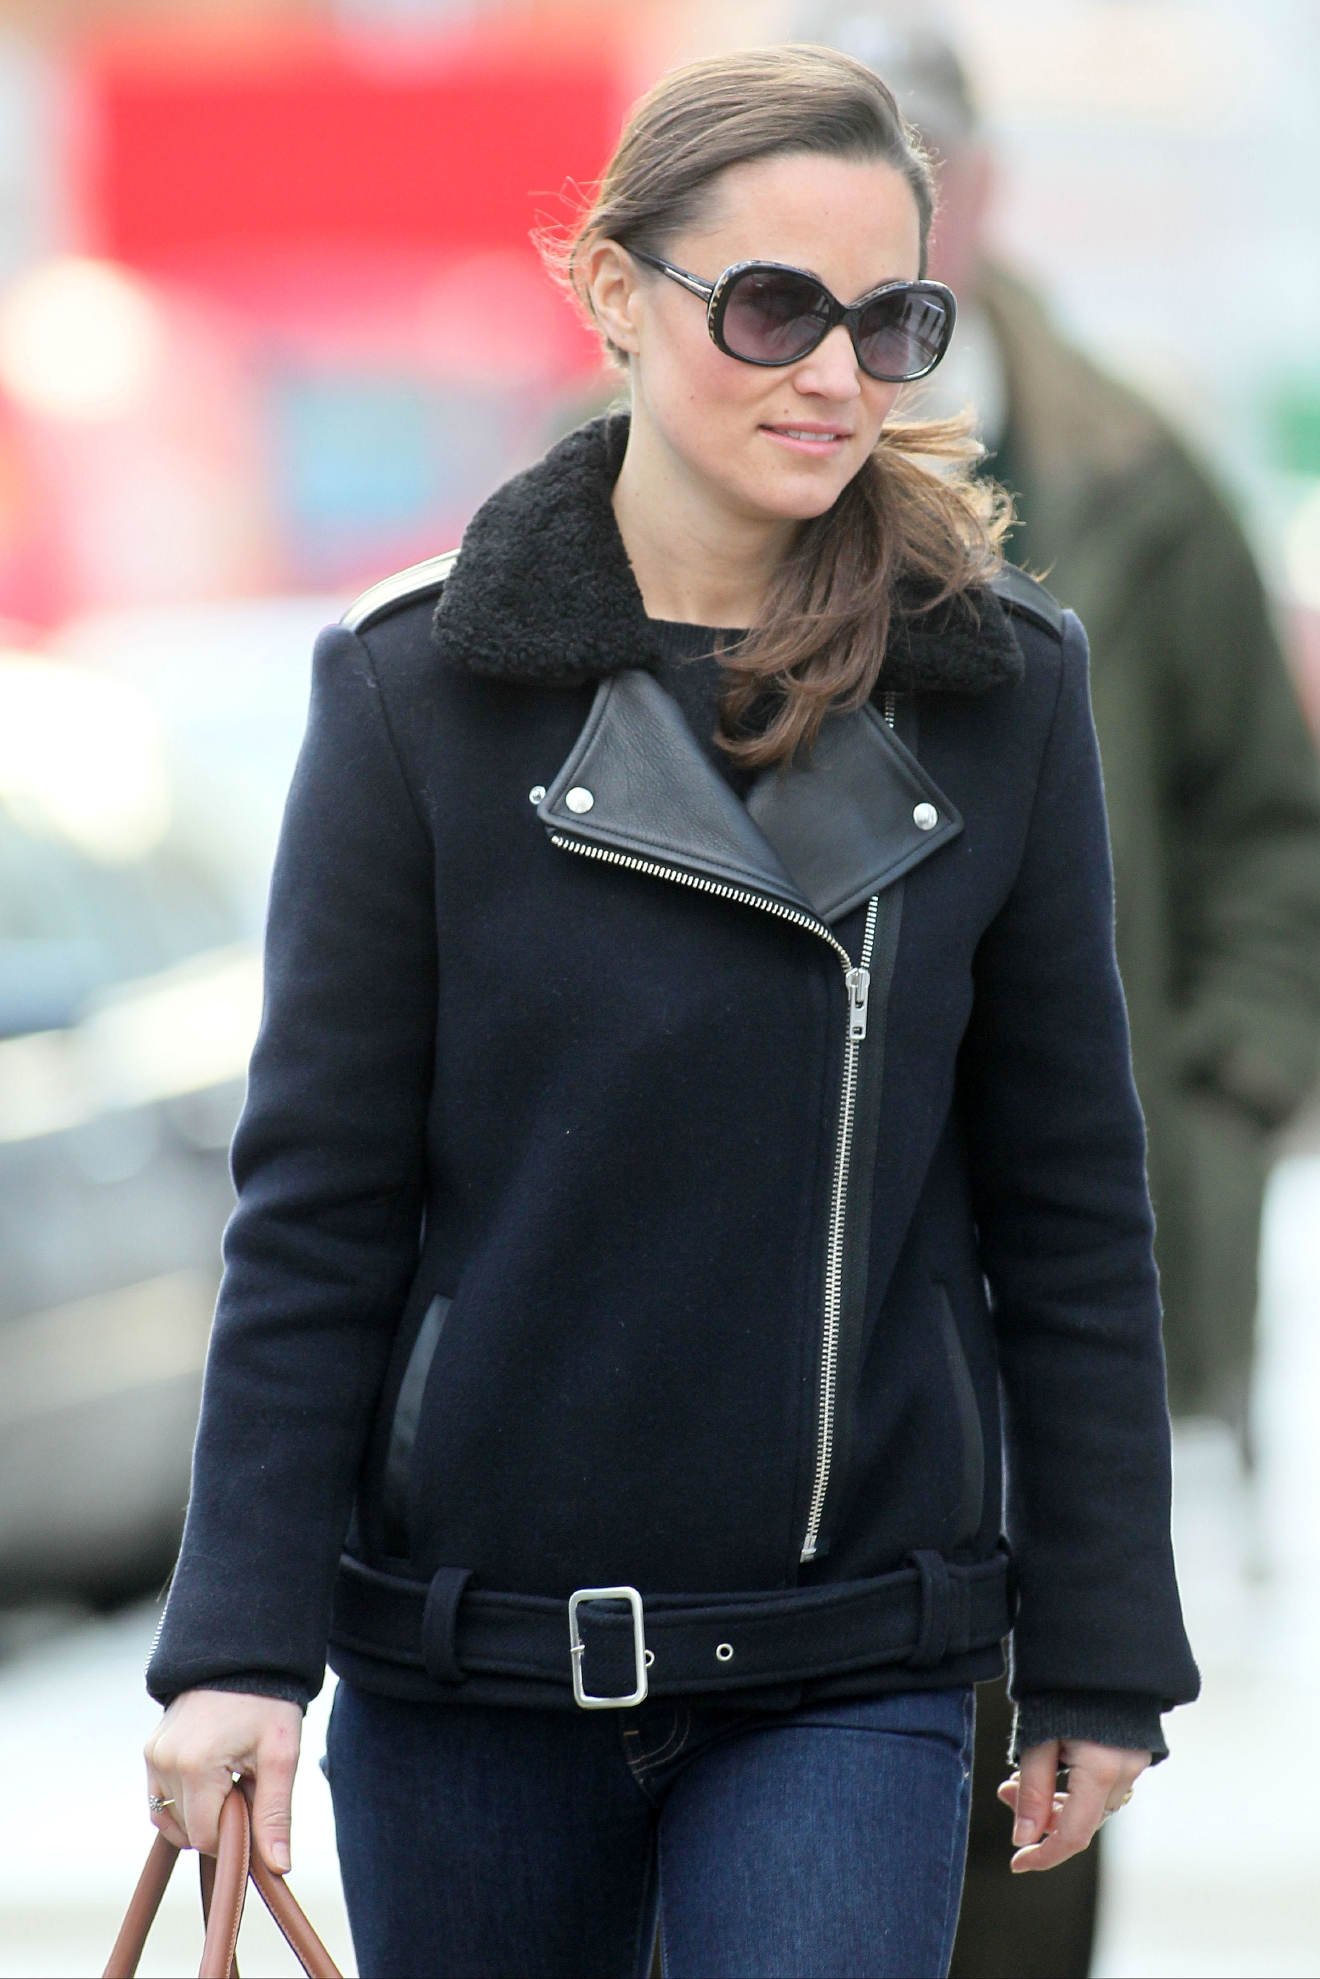 Pippa Middleton out and about in central London wearing dark sunglasses and a double breasted zip-up jacket with a fur collar  Featuring: Pippa MiddletonWhere: London, United Kingdom When: 07 Dec 2012 Credit: WENN.com